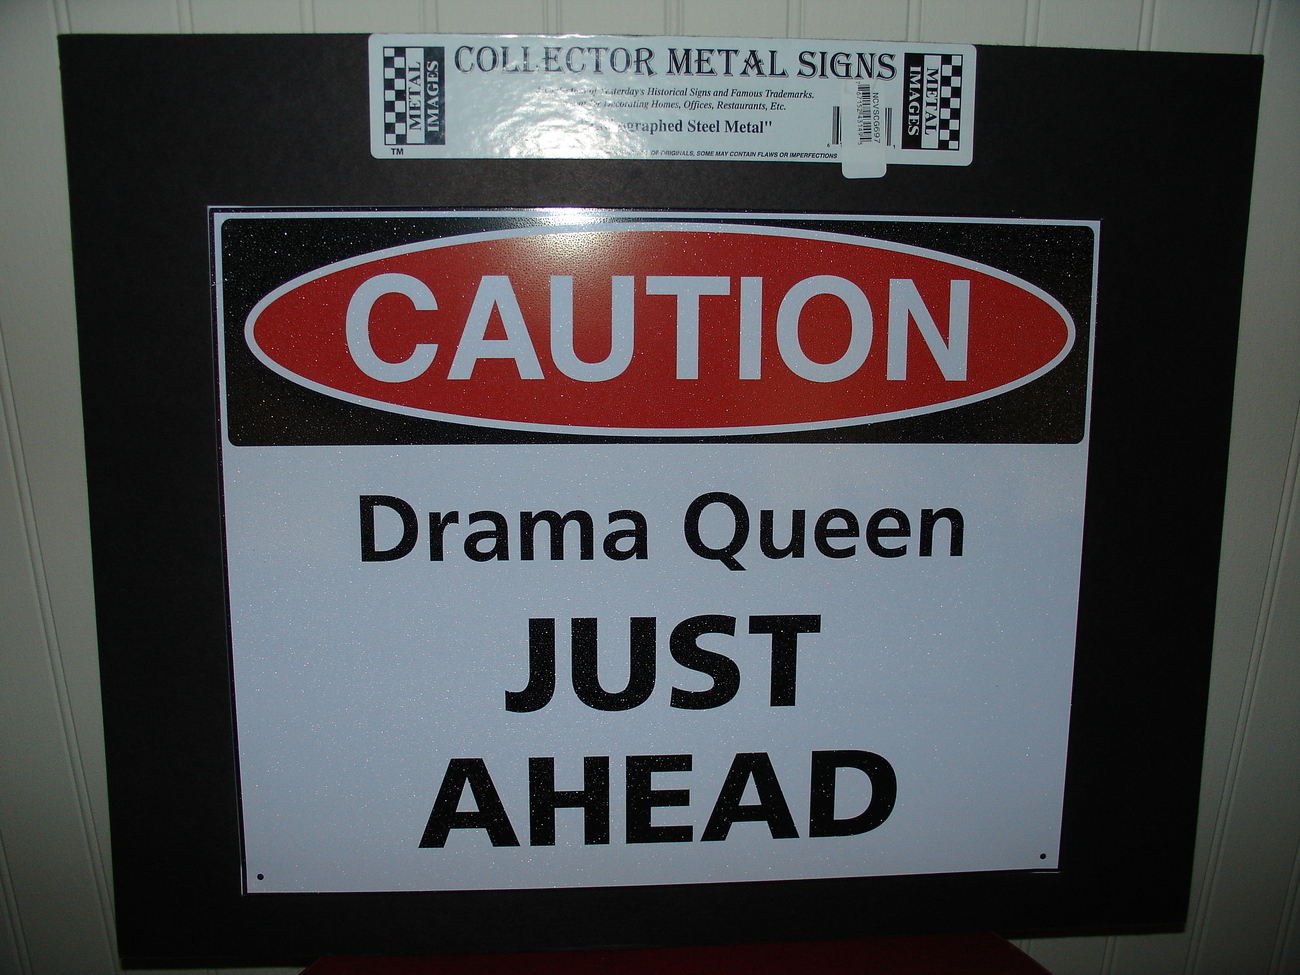 Caution Drama Queen Just Ahead- lithographed steel sign